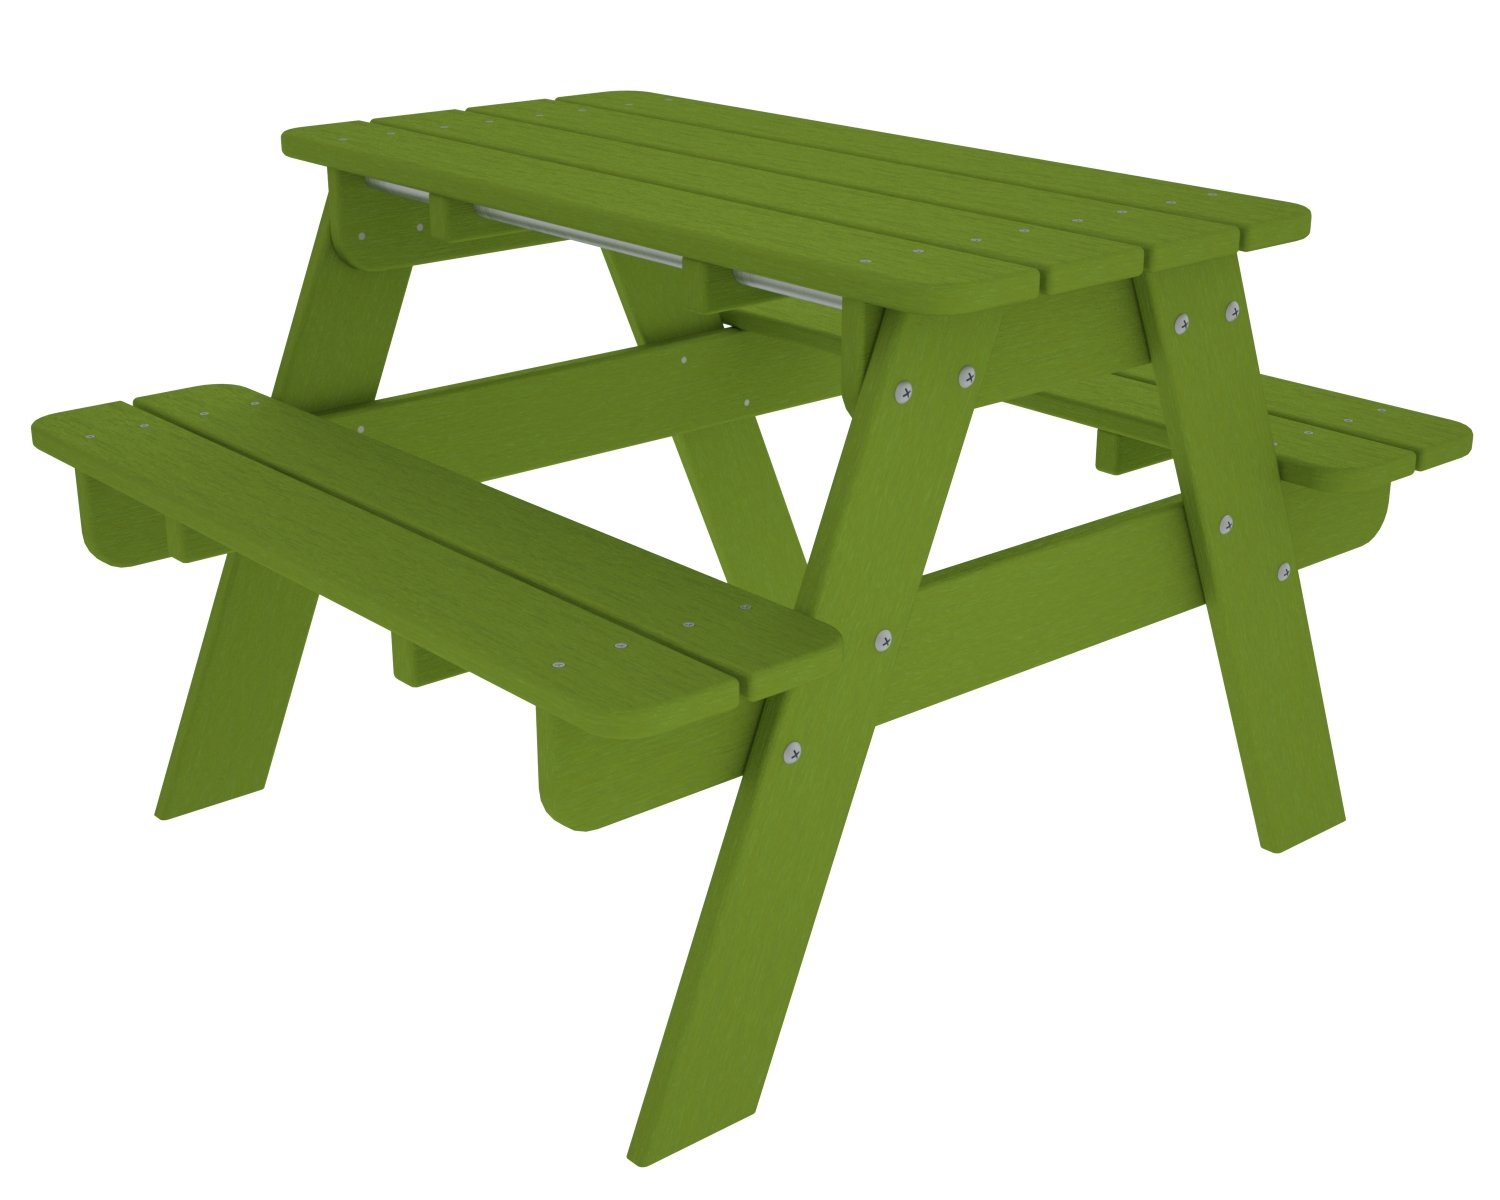 Awesome Amazon.com : POLYWOOD Outdoor Furniture Kid Picnic Table, Lime Recycled  Plastic Materials : Garden U0026 Outdoor Part 26